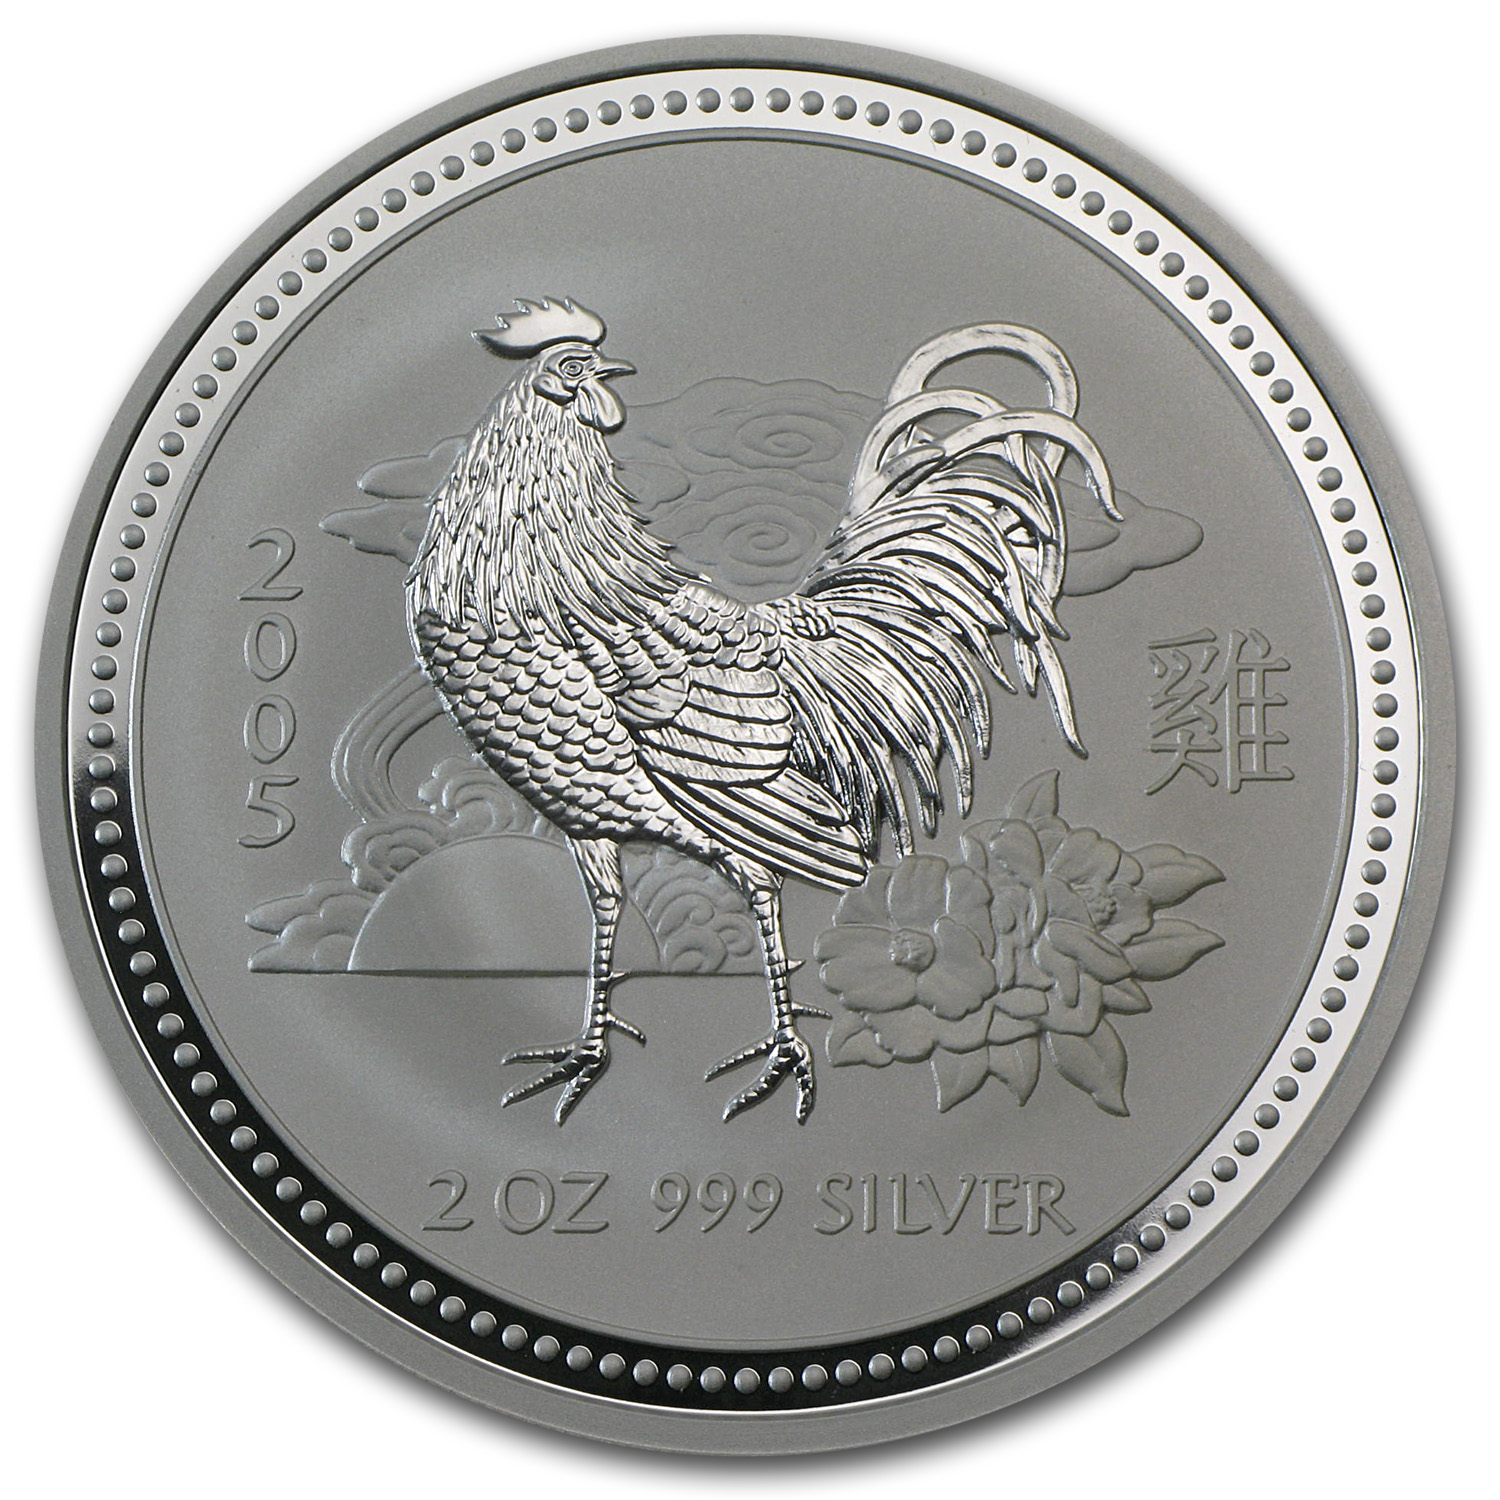 2005 Australia 2 oz Silver Year of the Rooster BU